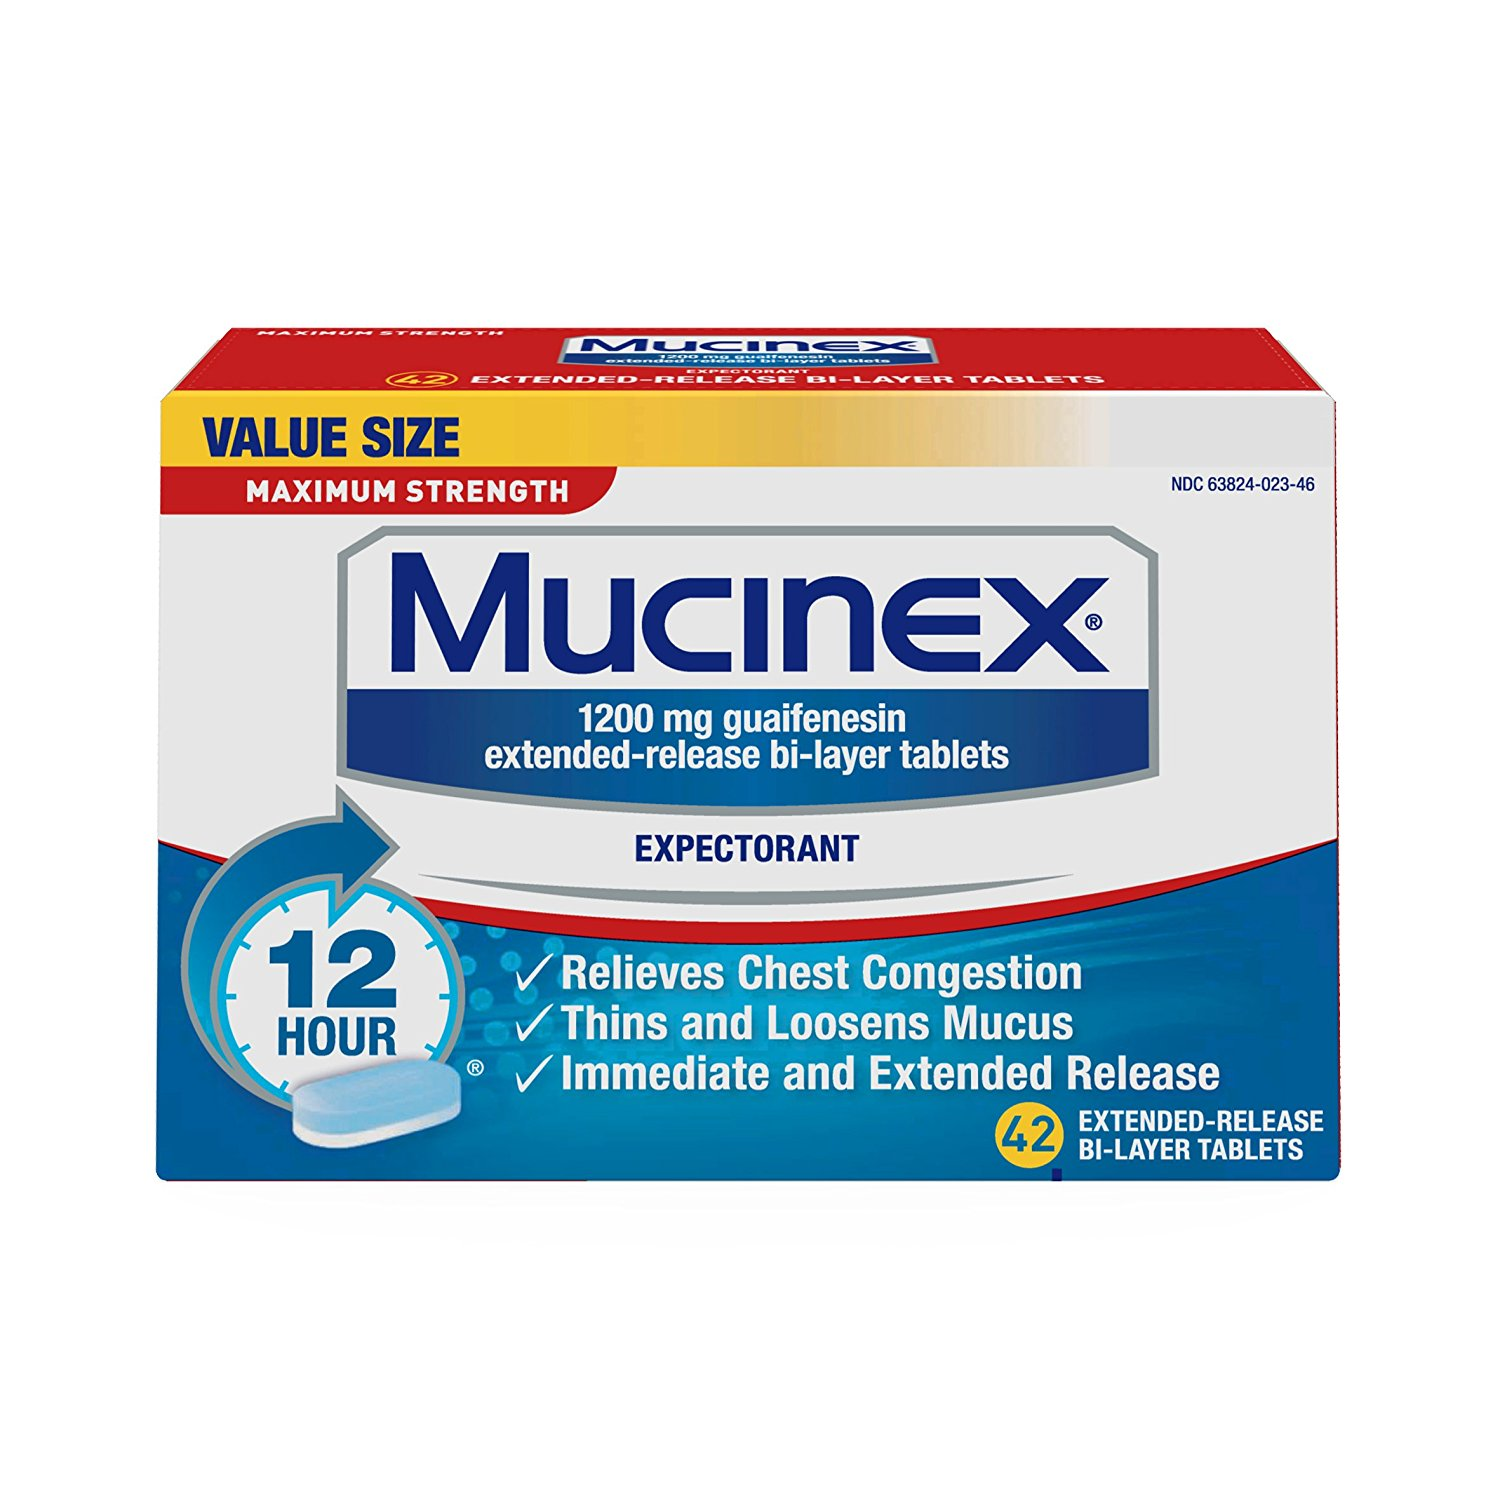 Mucinex Maximum Strength 12 Hour Chest Congestion Expectorant Relief Tablets, 1200 mg, 42 Count, Thins & Loosens Mucus